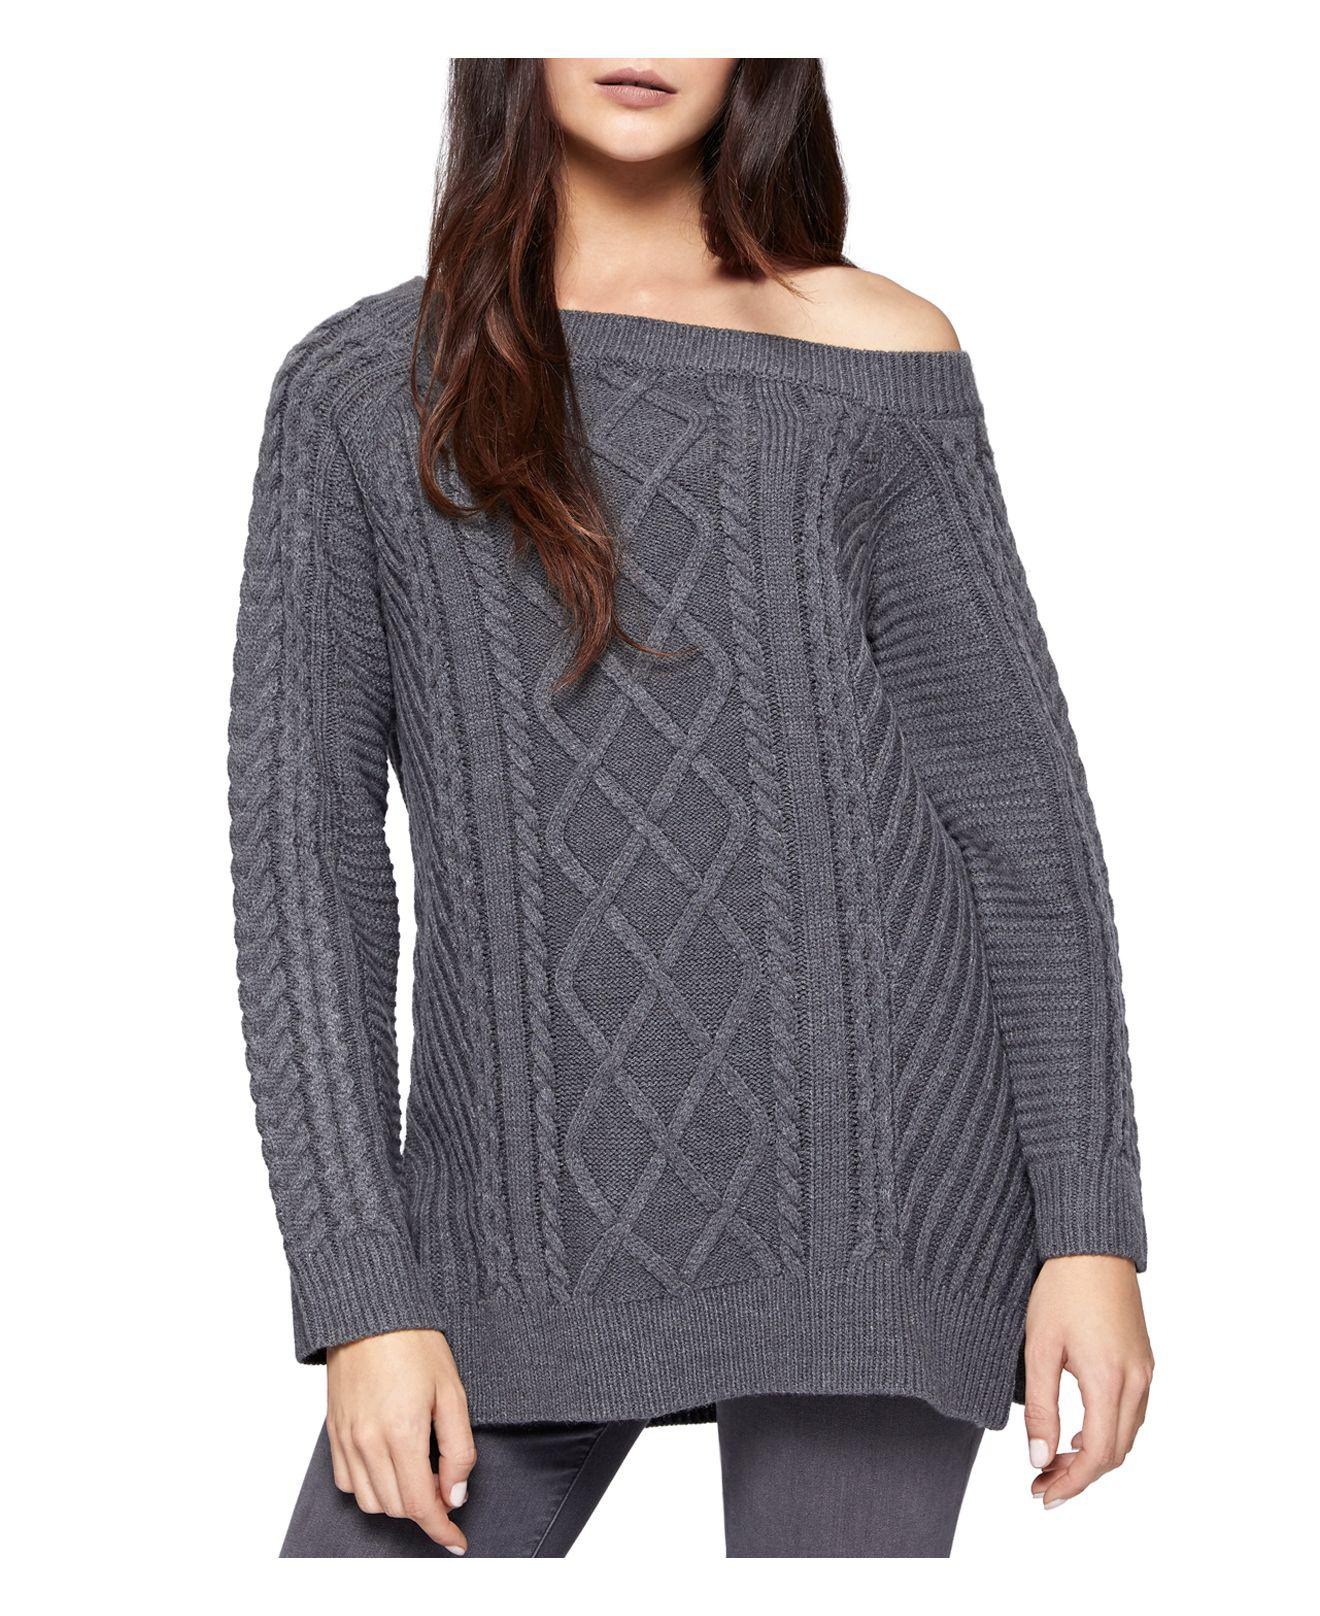 Sanctuary Tinsley Off-the-shoulder Sweater in Gray | Lyst